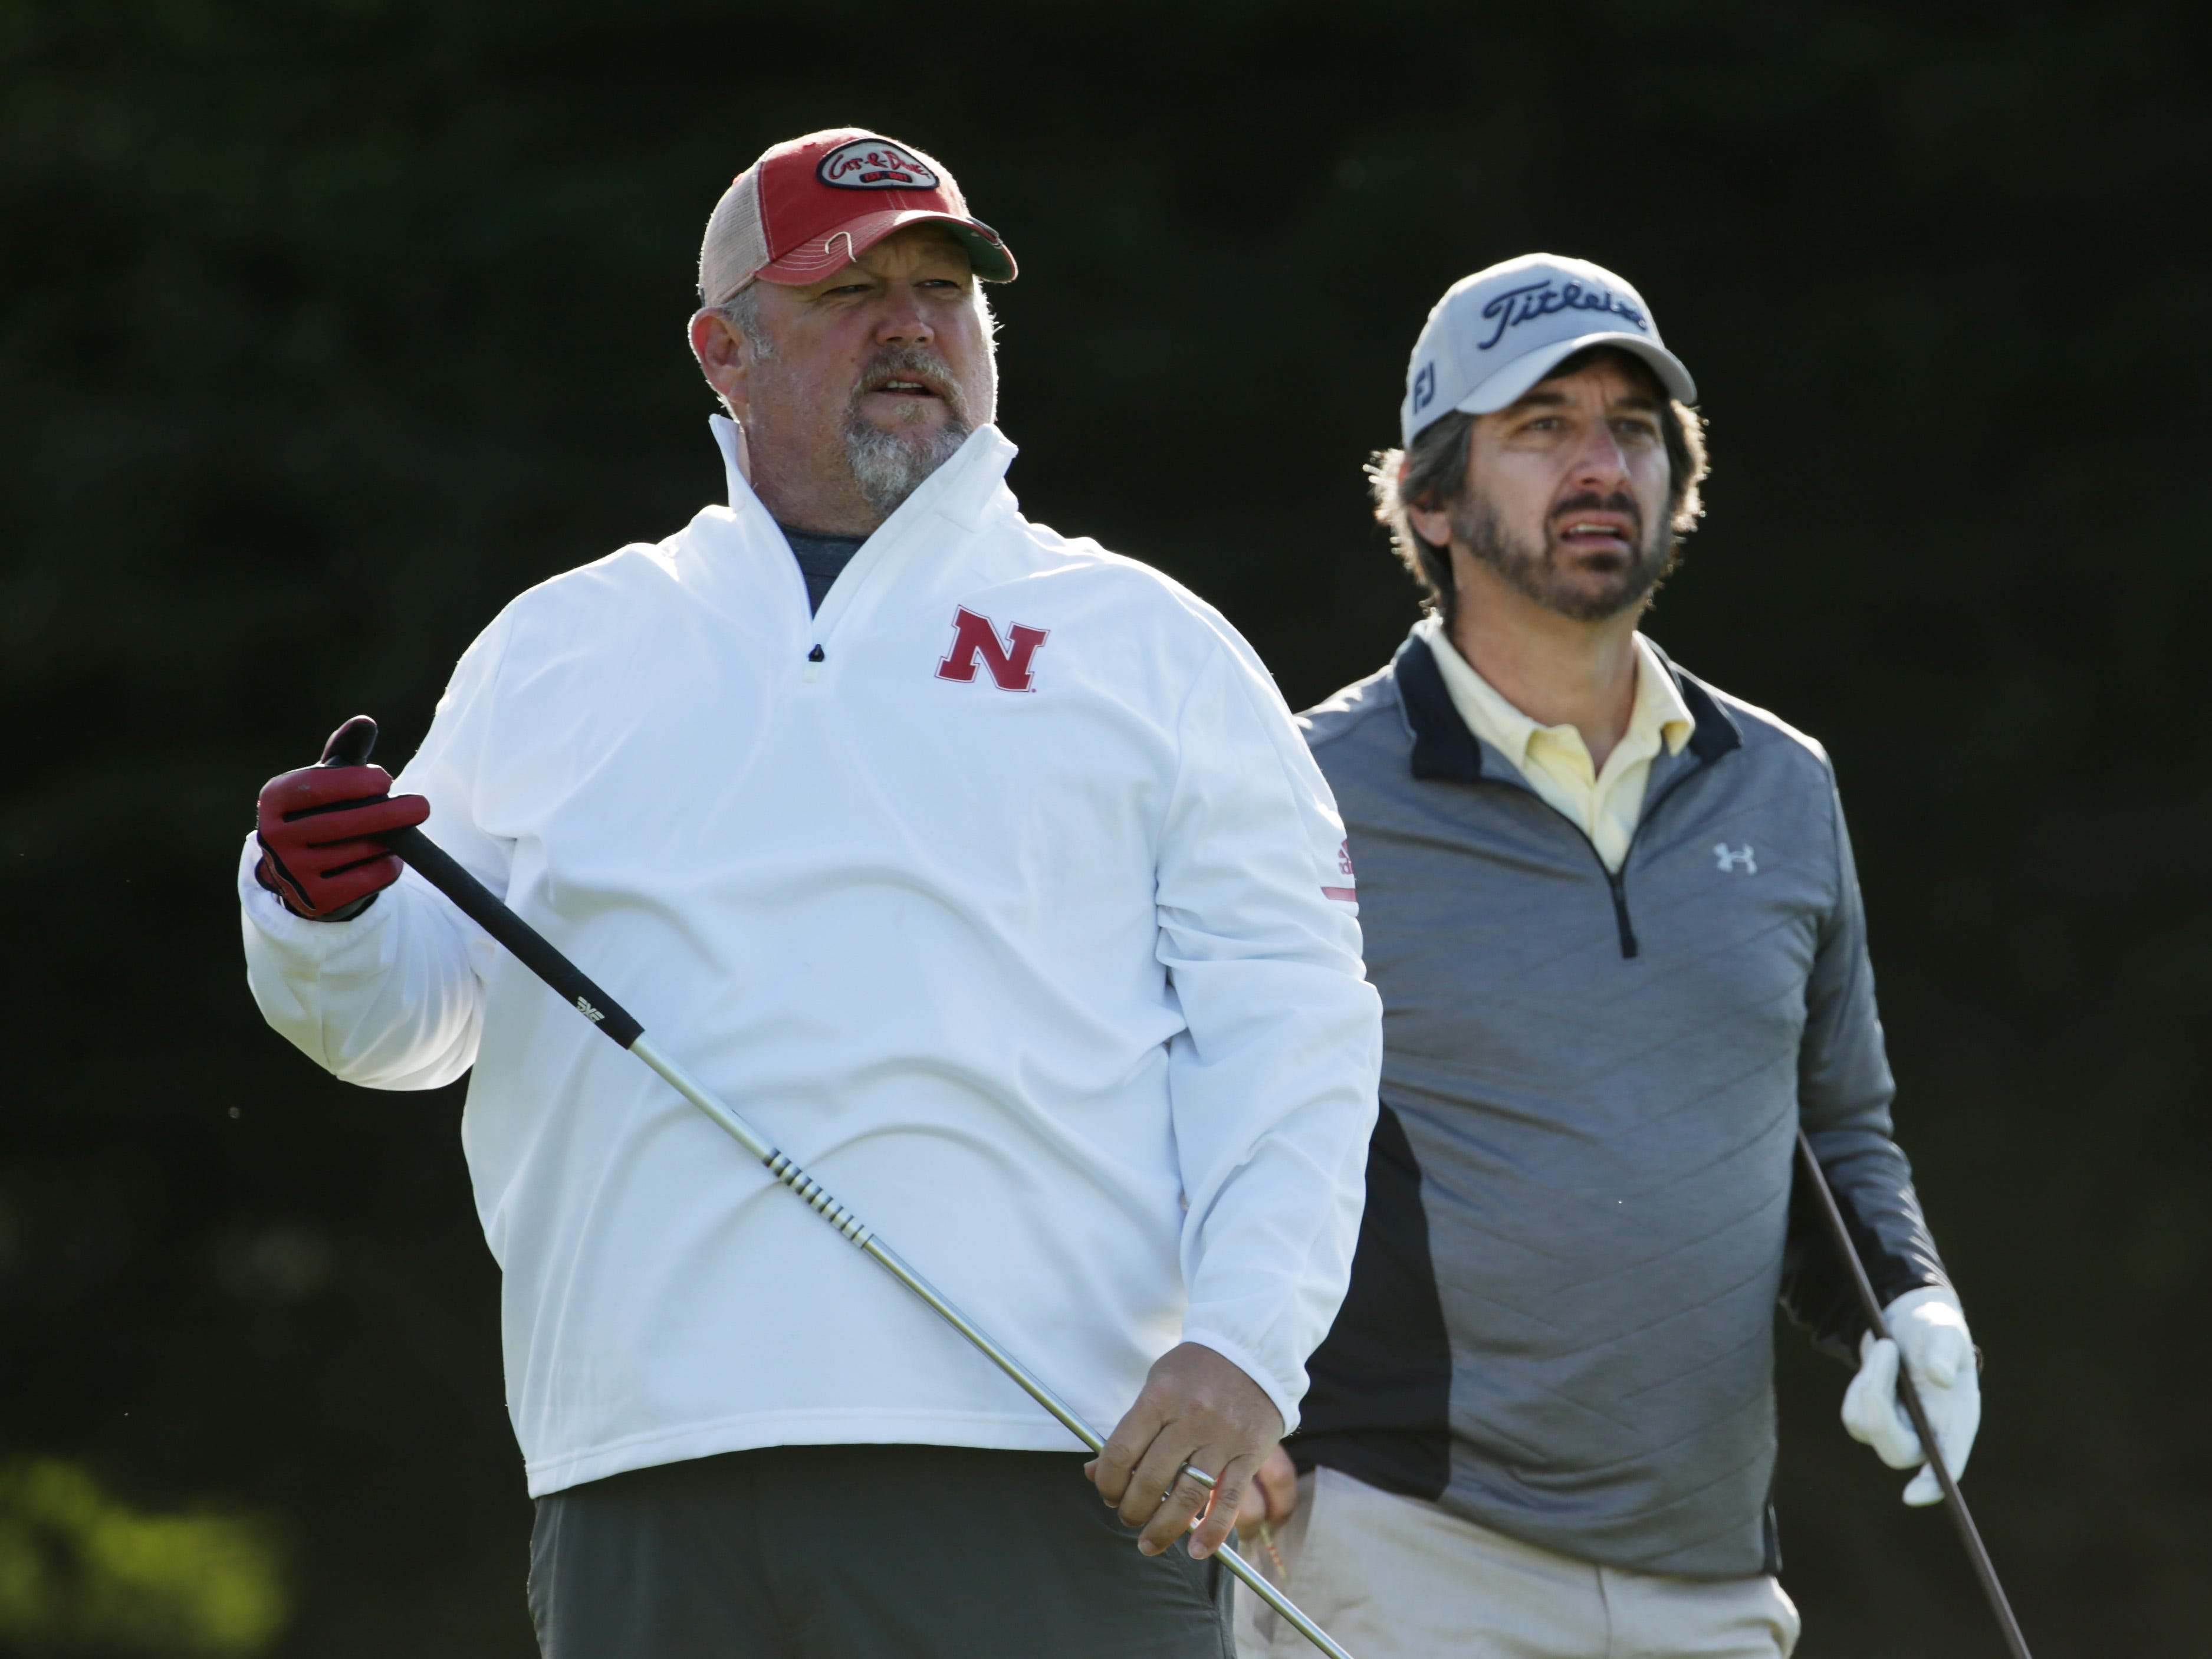 Larry the Cable Guy and Ray Romano look on from the fifth tee during the first round of the AT&T Pebble Beach Pro-Am.